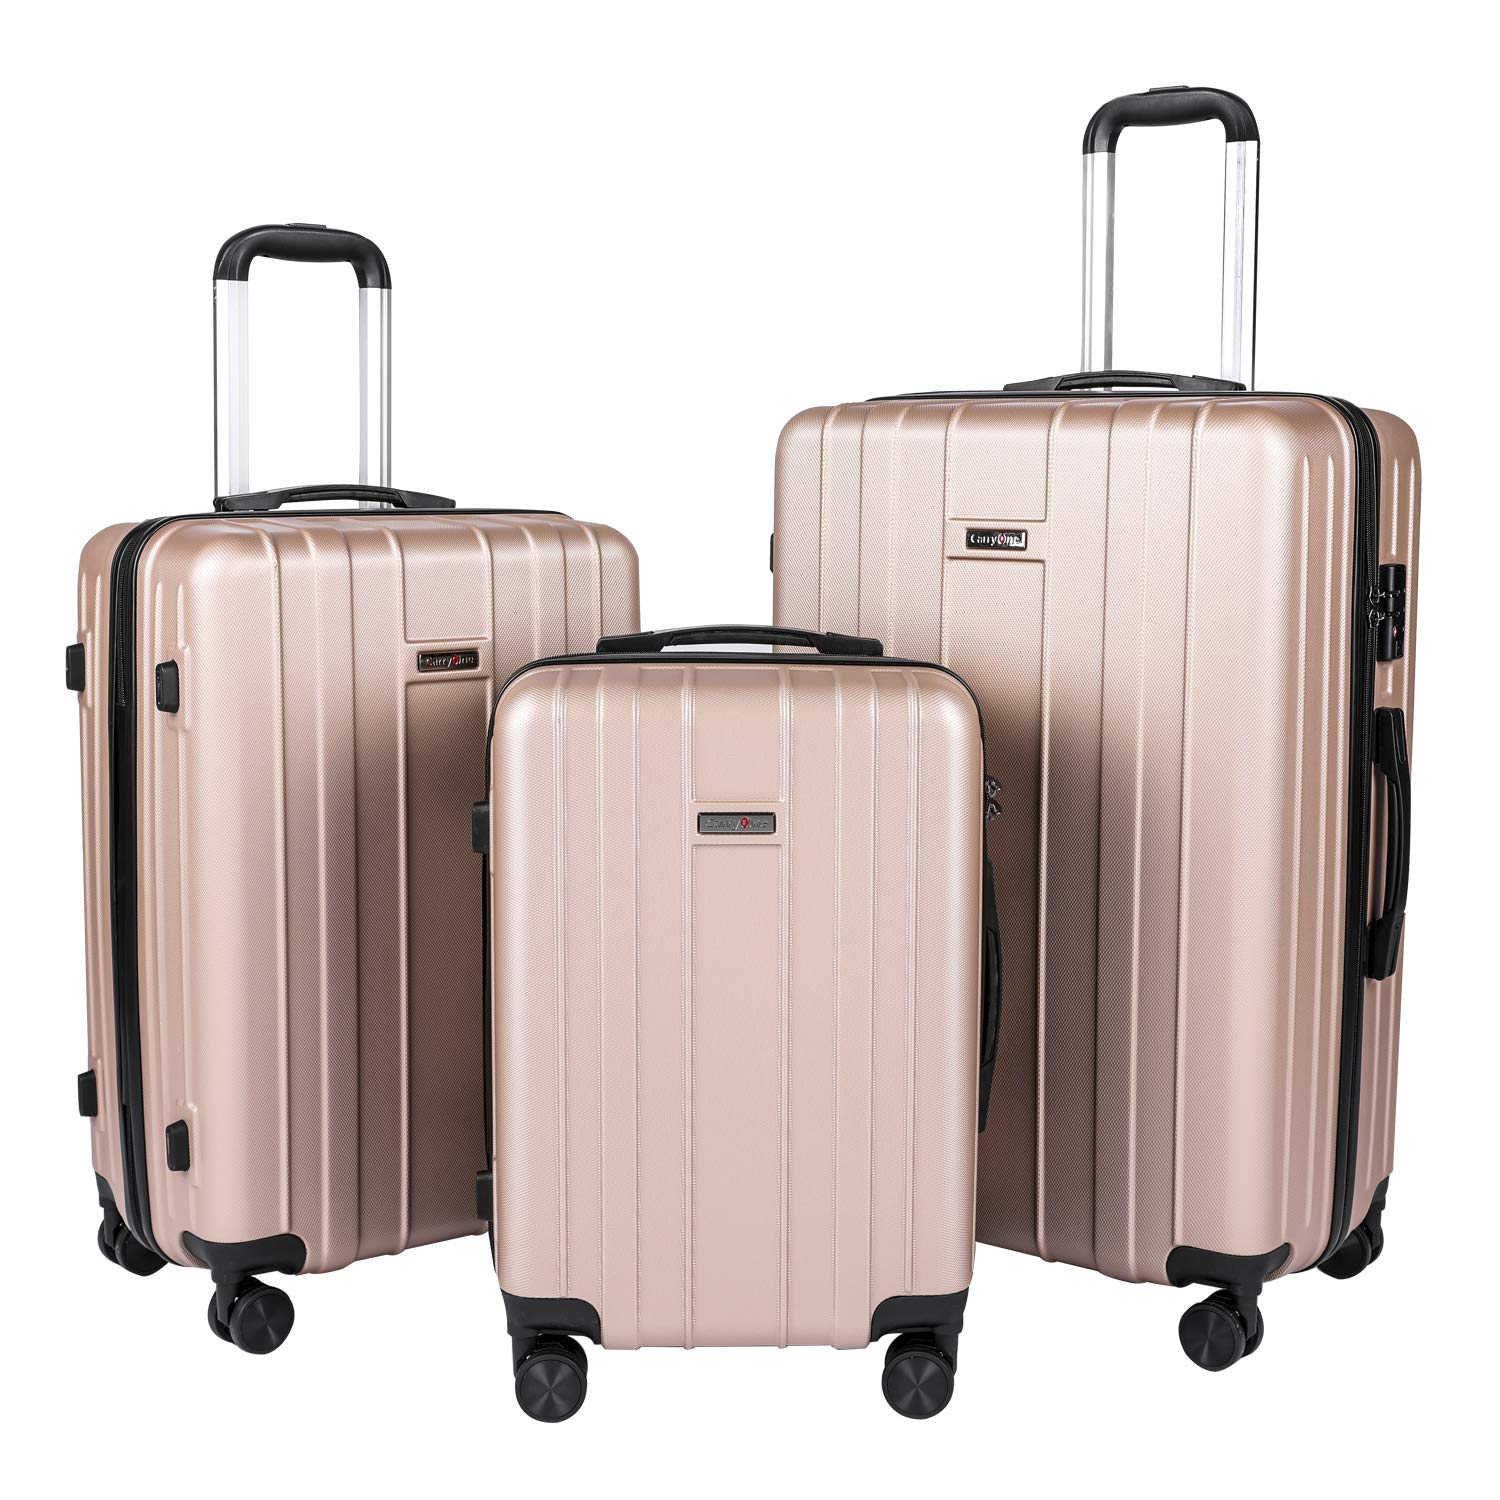 17df863ed46f CarryOne Luggage Lightweight Suitcase ABS 3 Piece Set with TSA Lock Spinner  Whells TD3-Gold(20in,24in,28in)